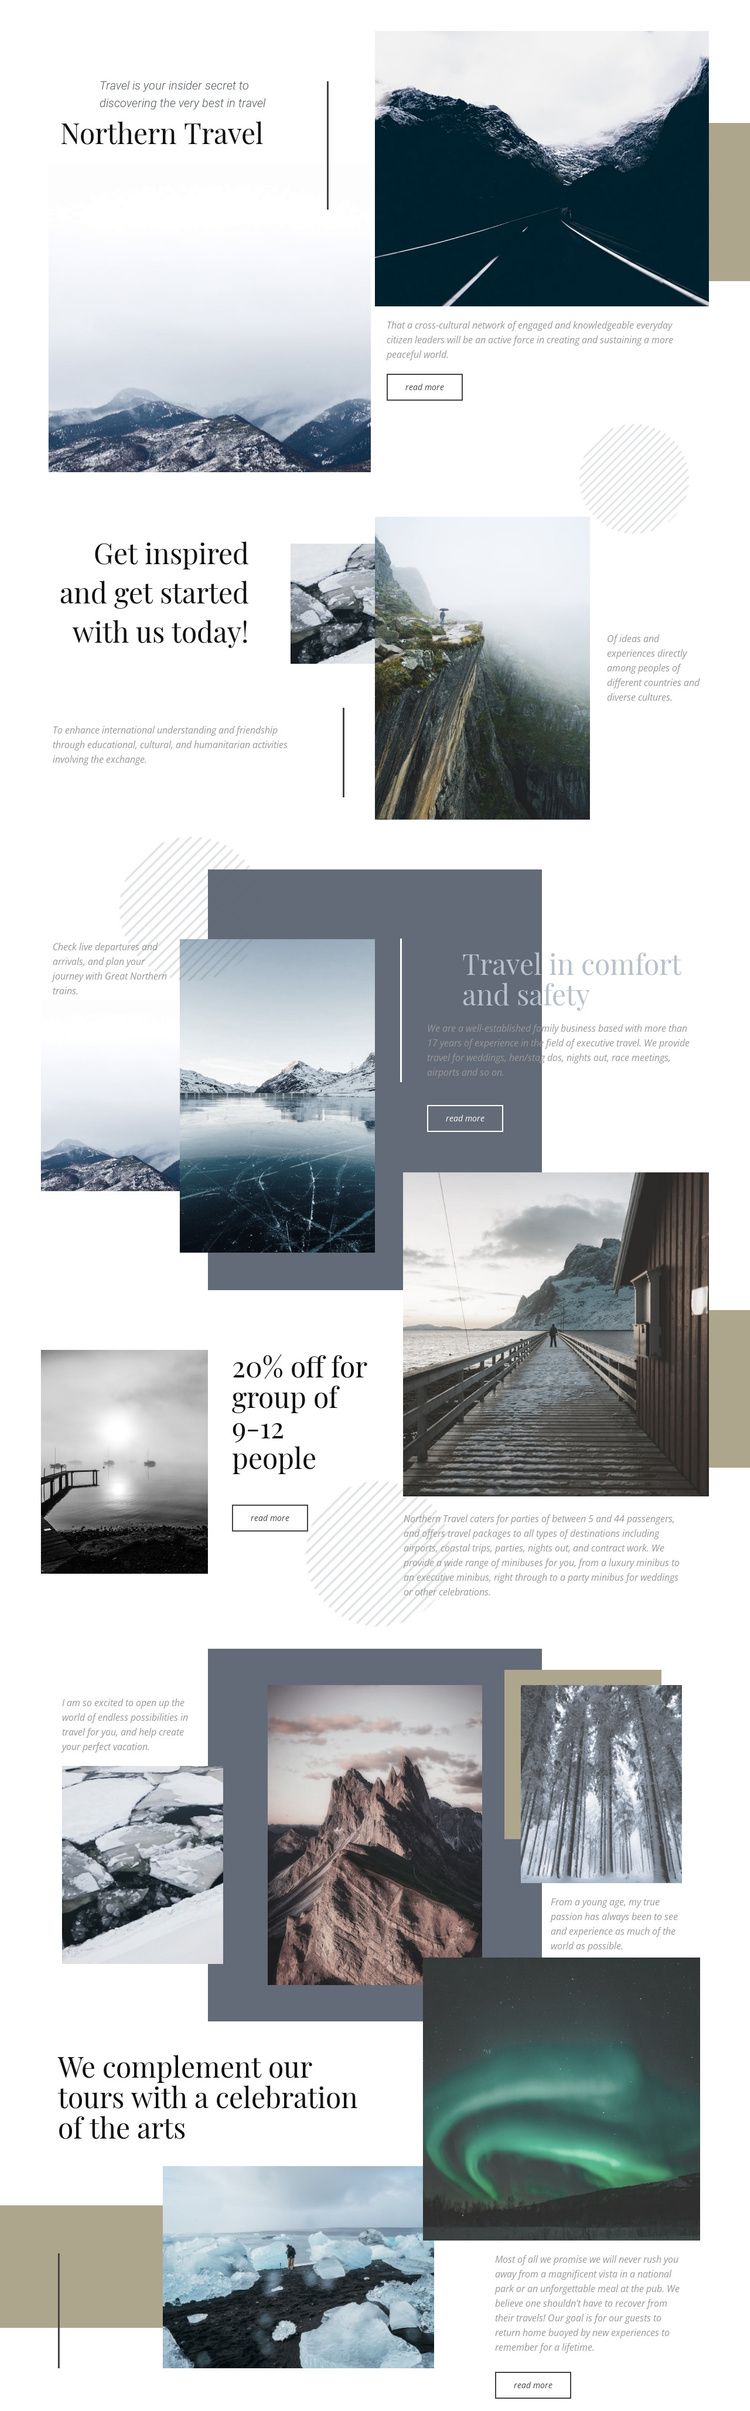 Northern Travel Joomla Template